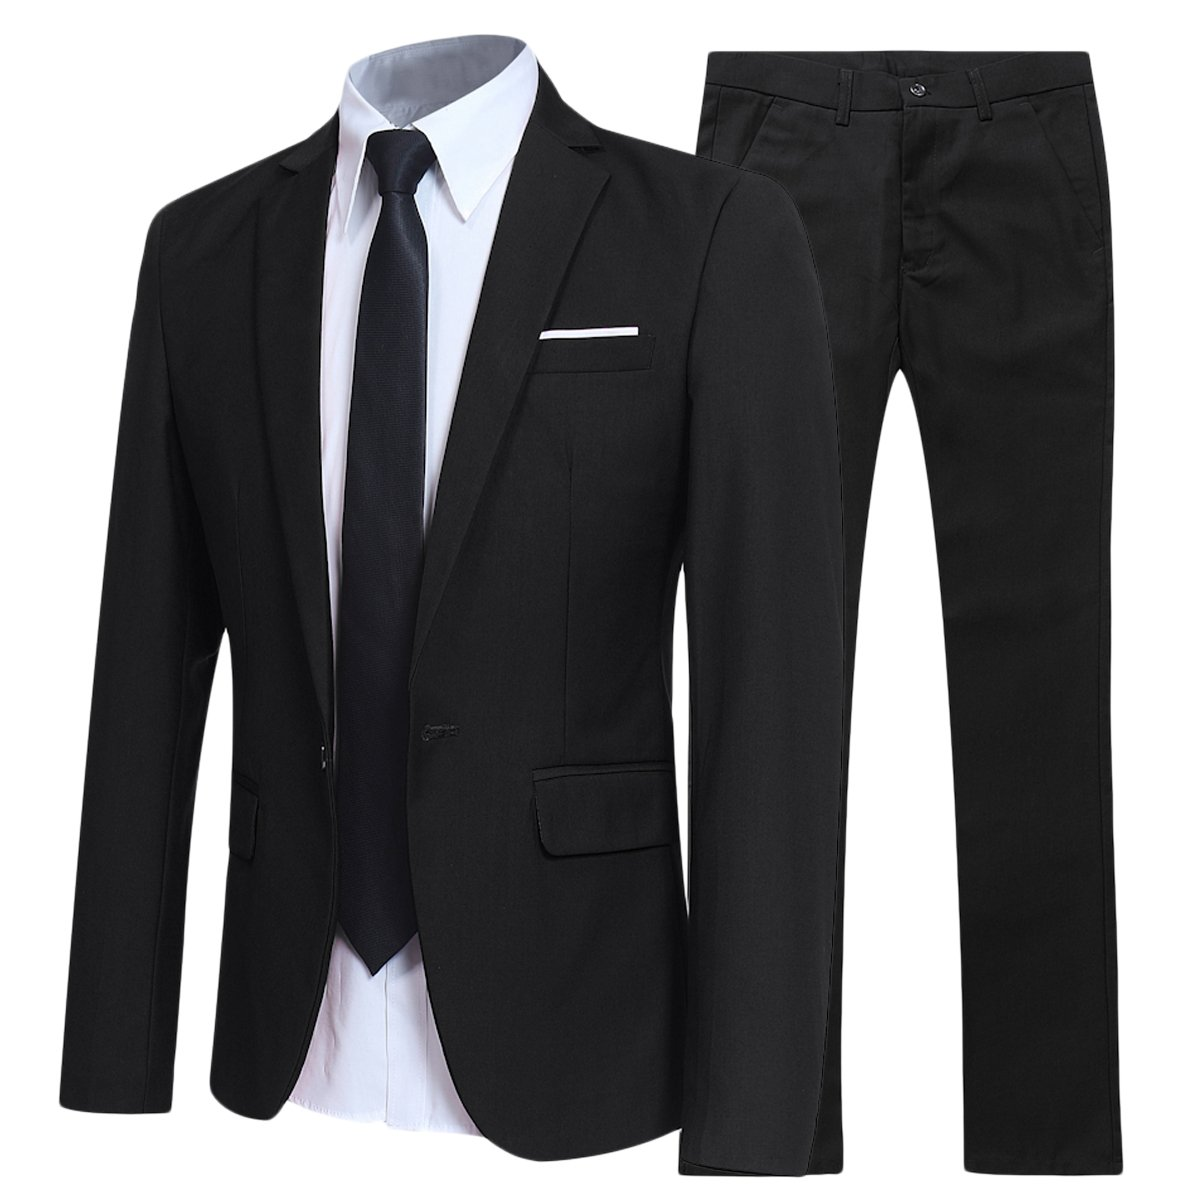 e32d45a3ac4 YFFUSHI Slim fit 2 Piece Suit for Men One Button Casual Formal Wedding  Tuxedo at Amazon Men s Clothing store